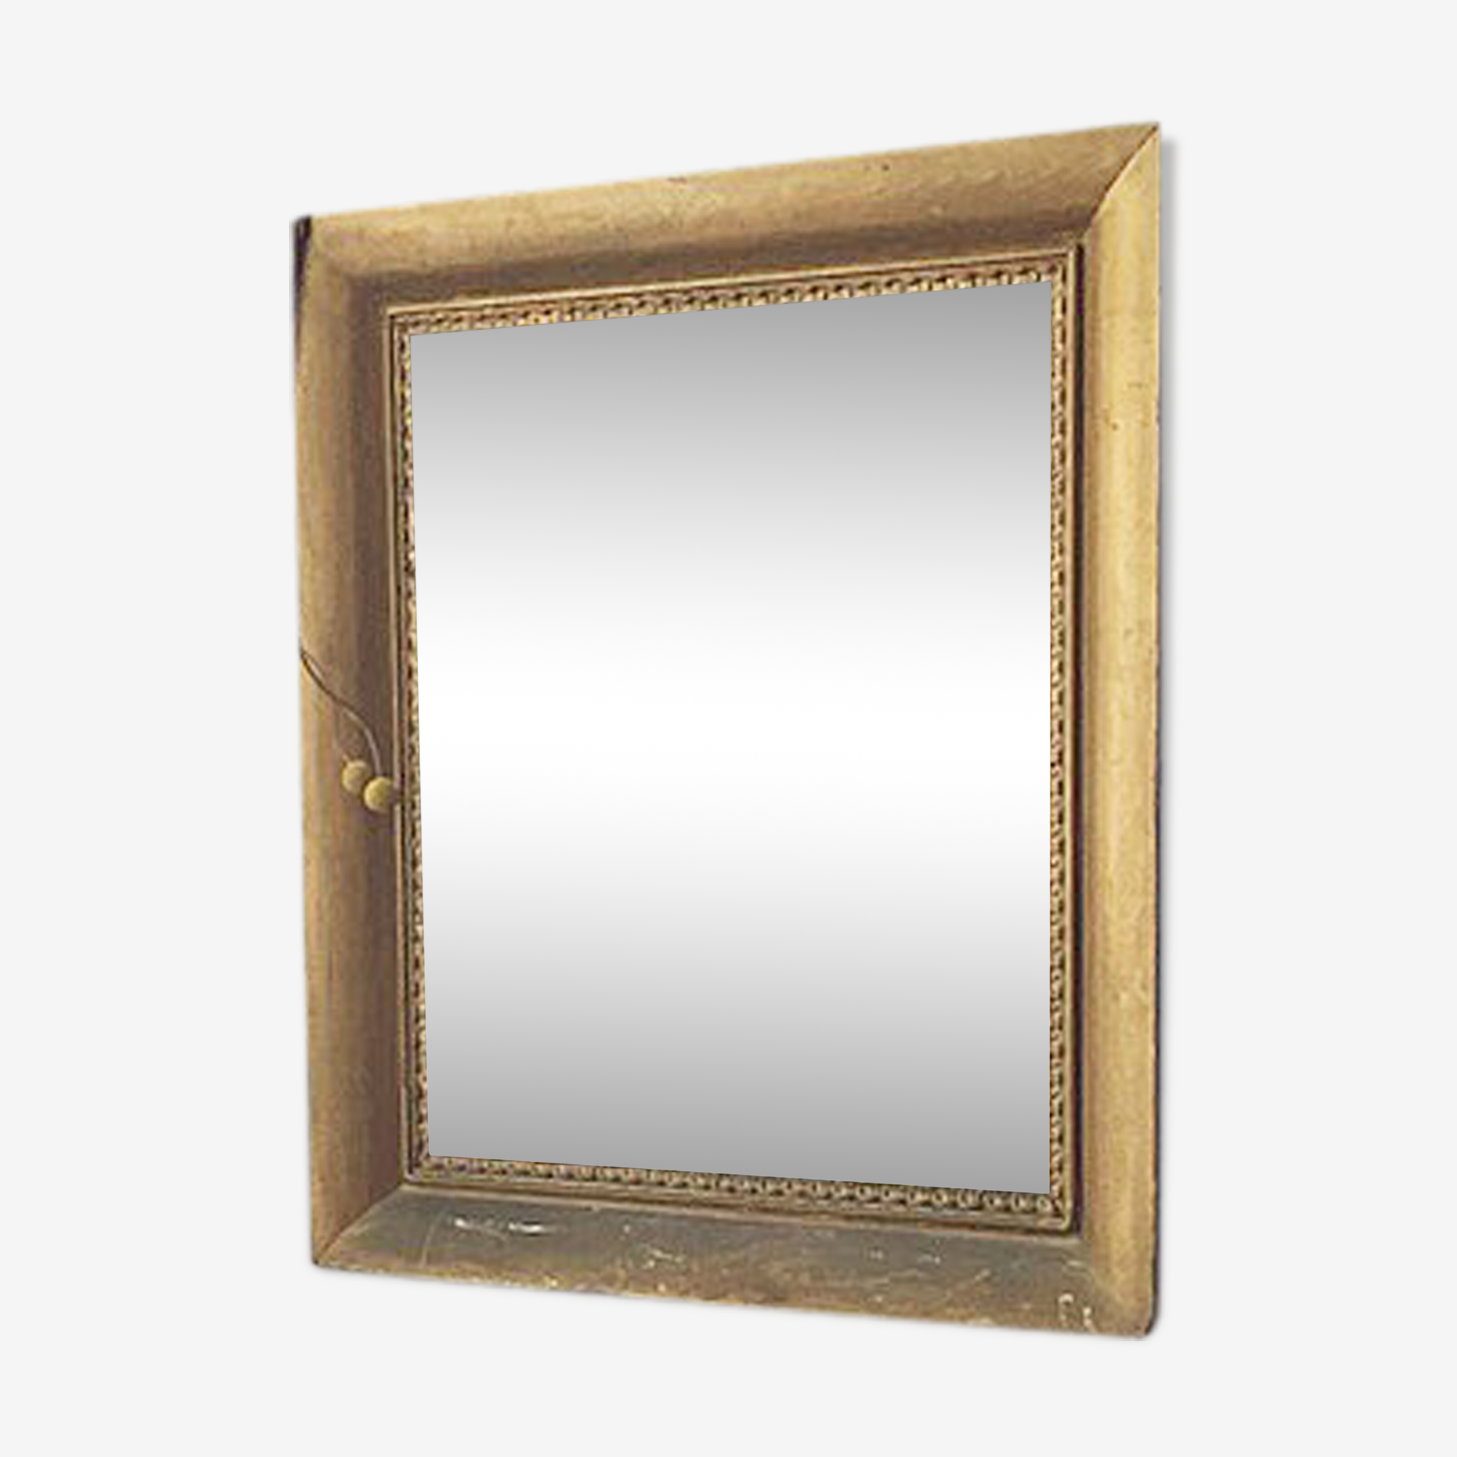 Miroir doré rectangle 68 x 77 cm